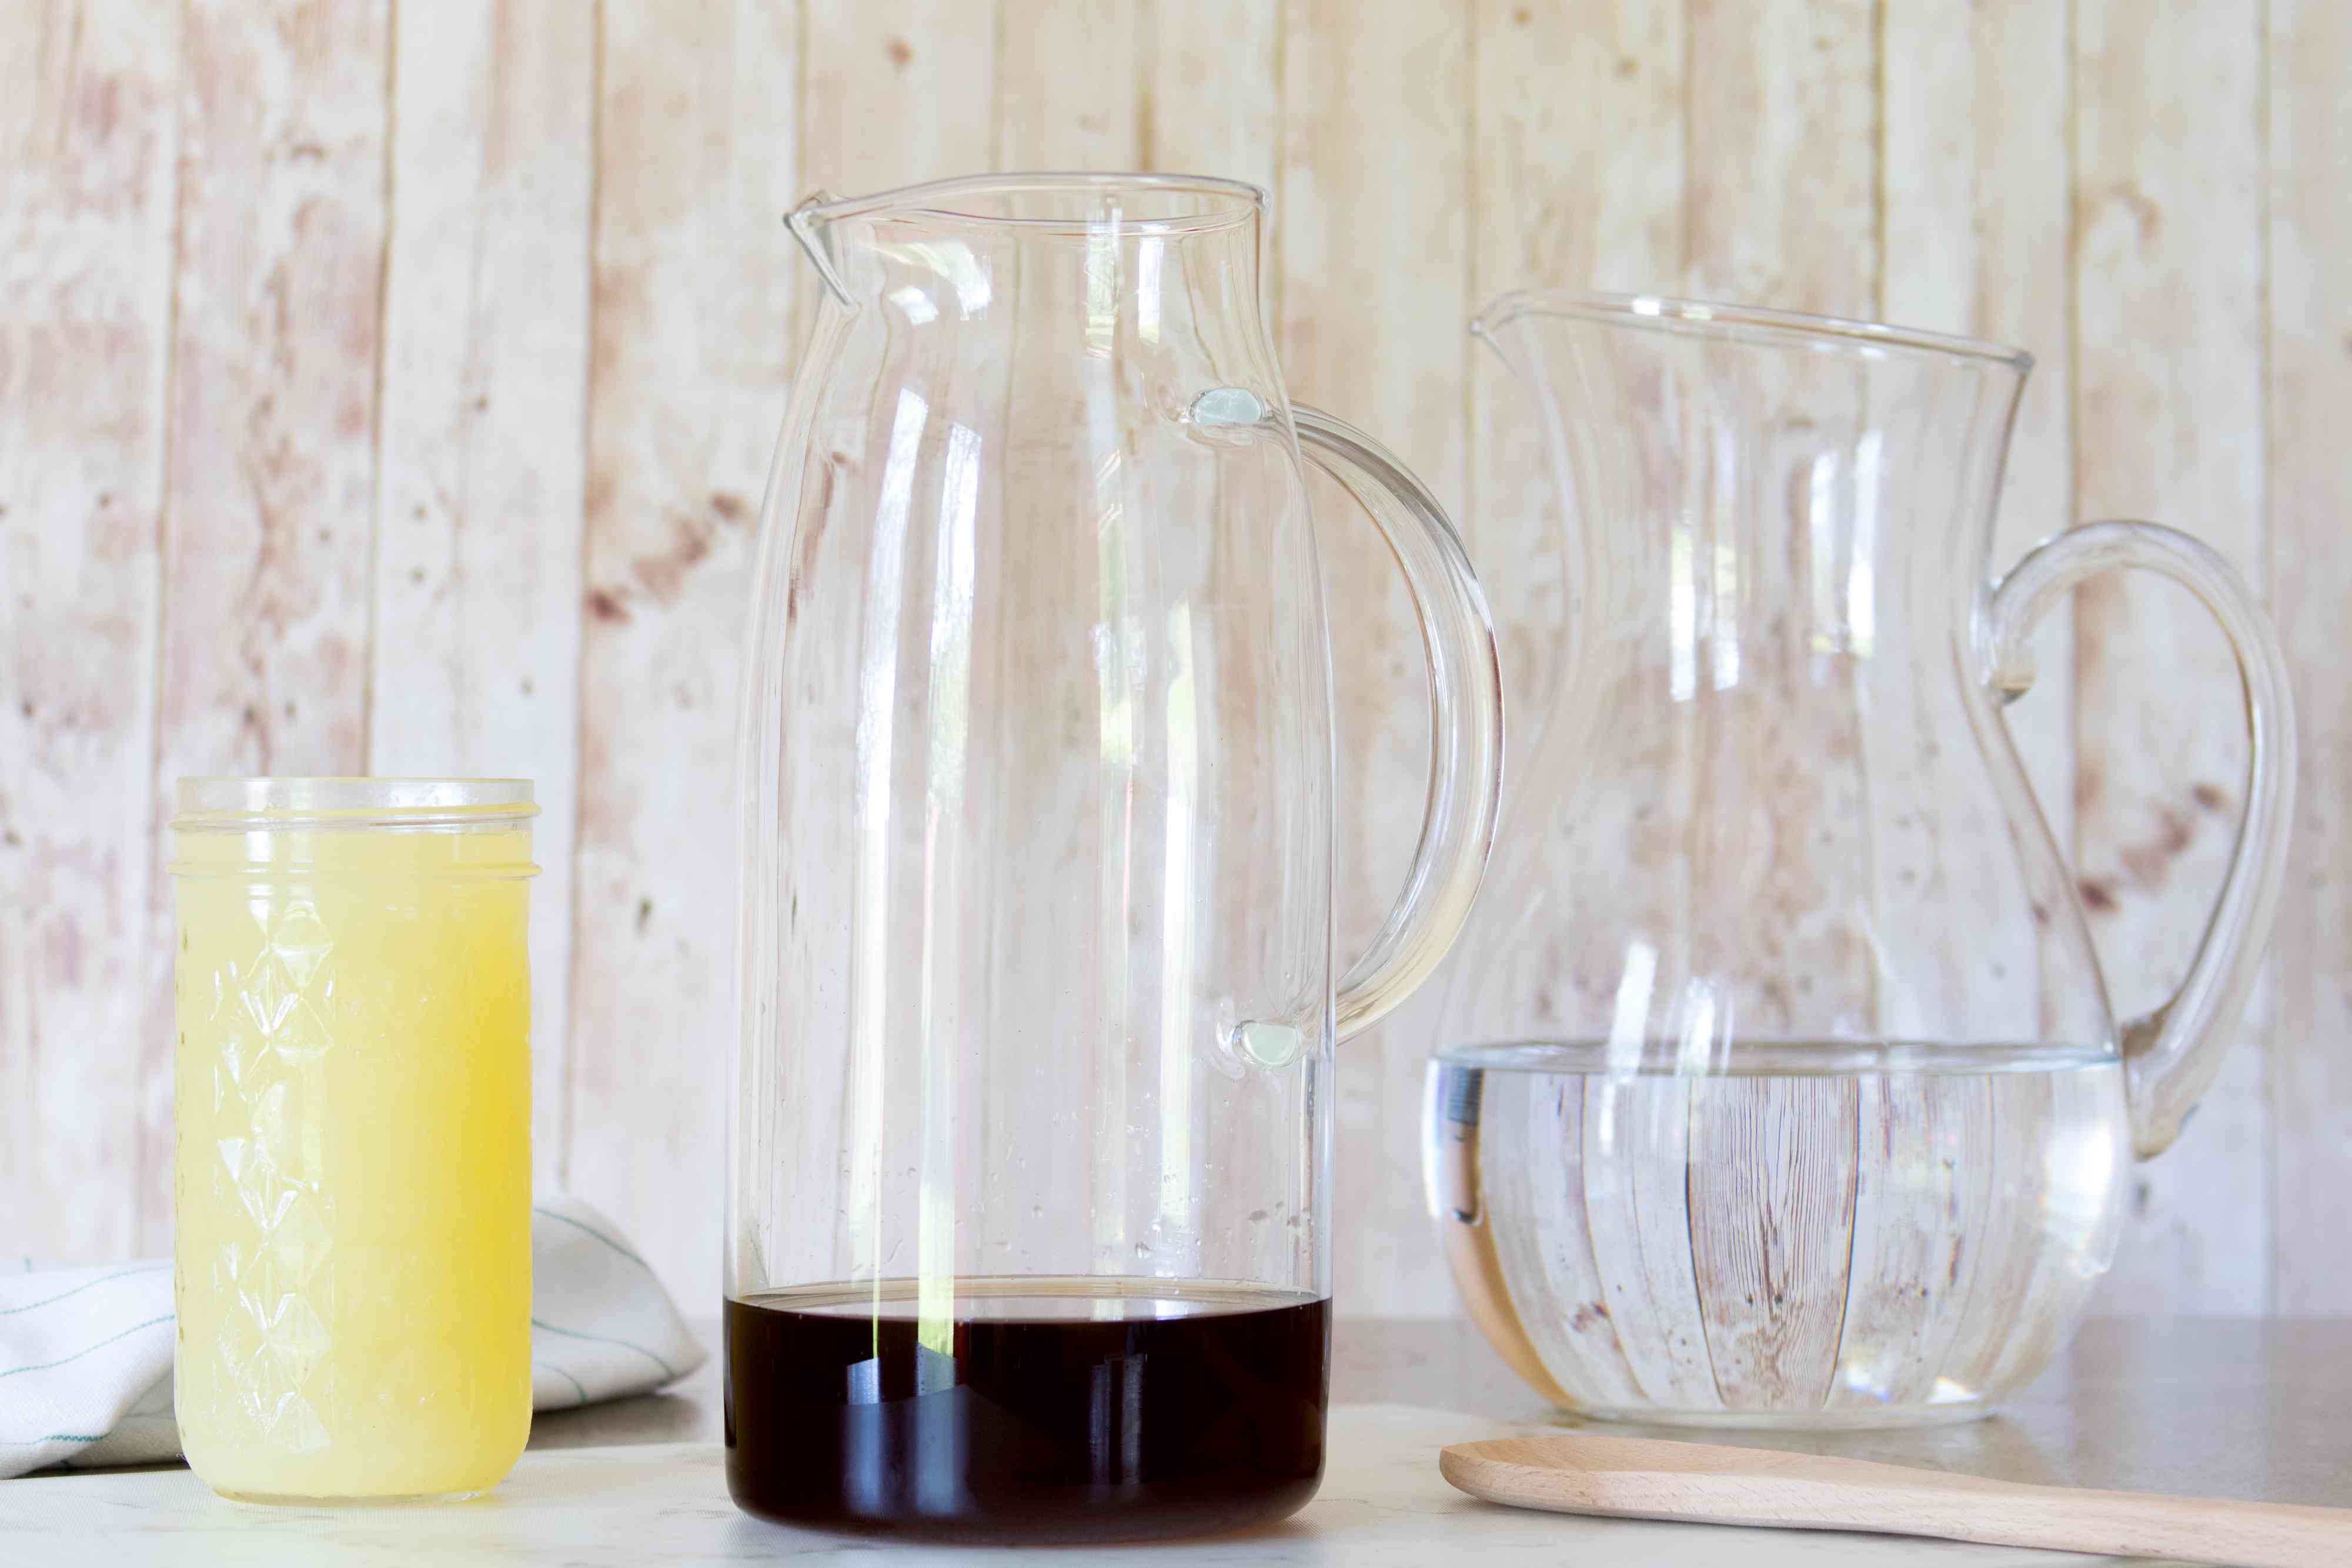 Mixing Up a Pitcher of Ginger Lemonade